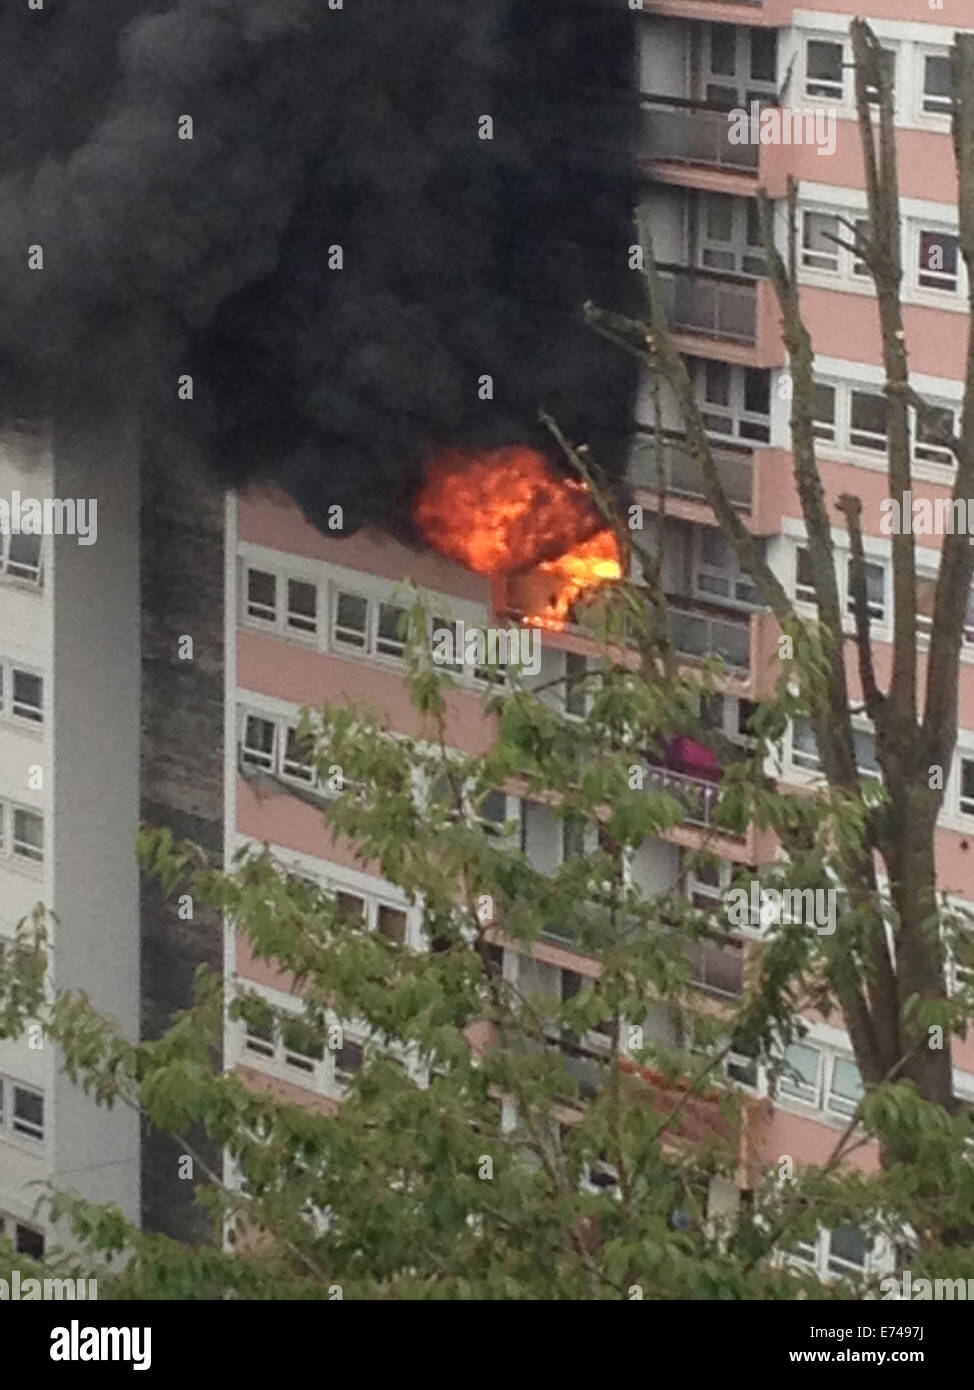 Bristol, UK. 6th September, 2014. One person died in a major fire in a Block of Flats in Bristol. Firefighters,police - Stock Image